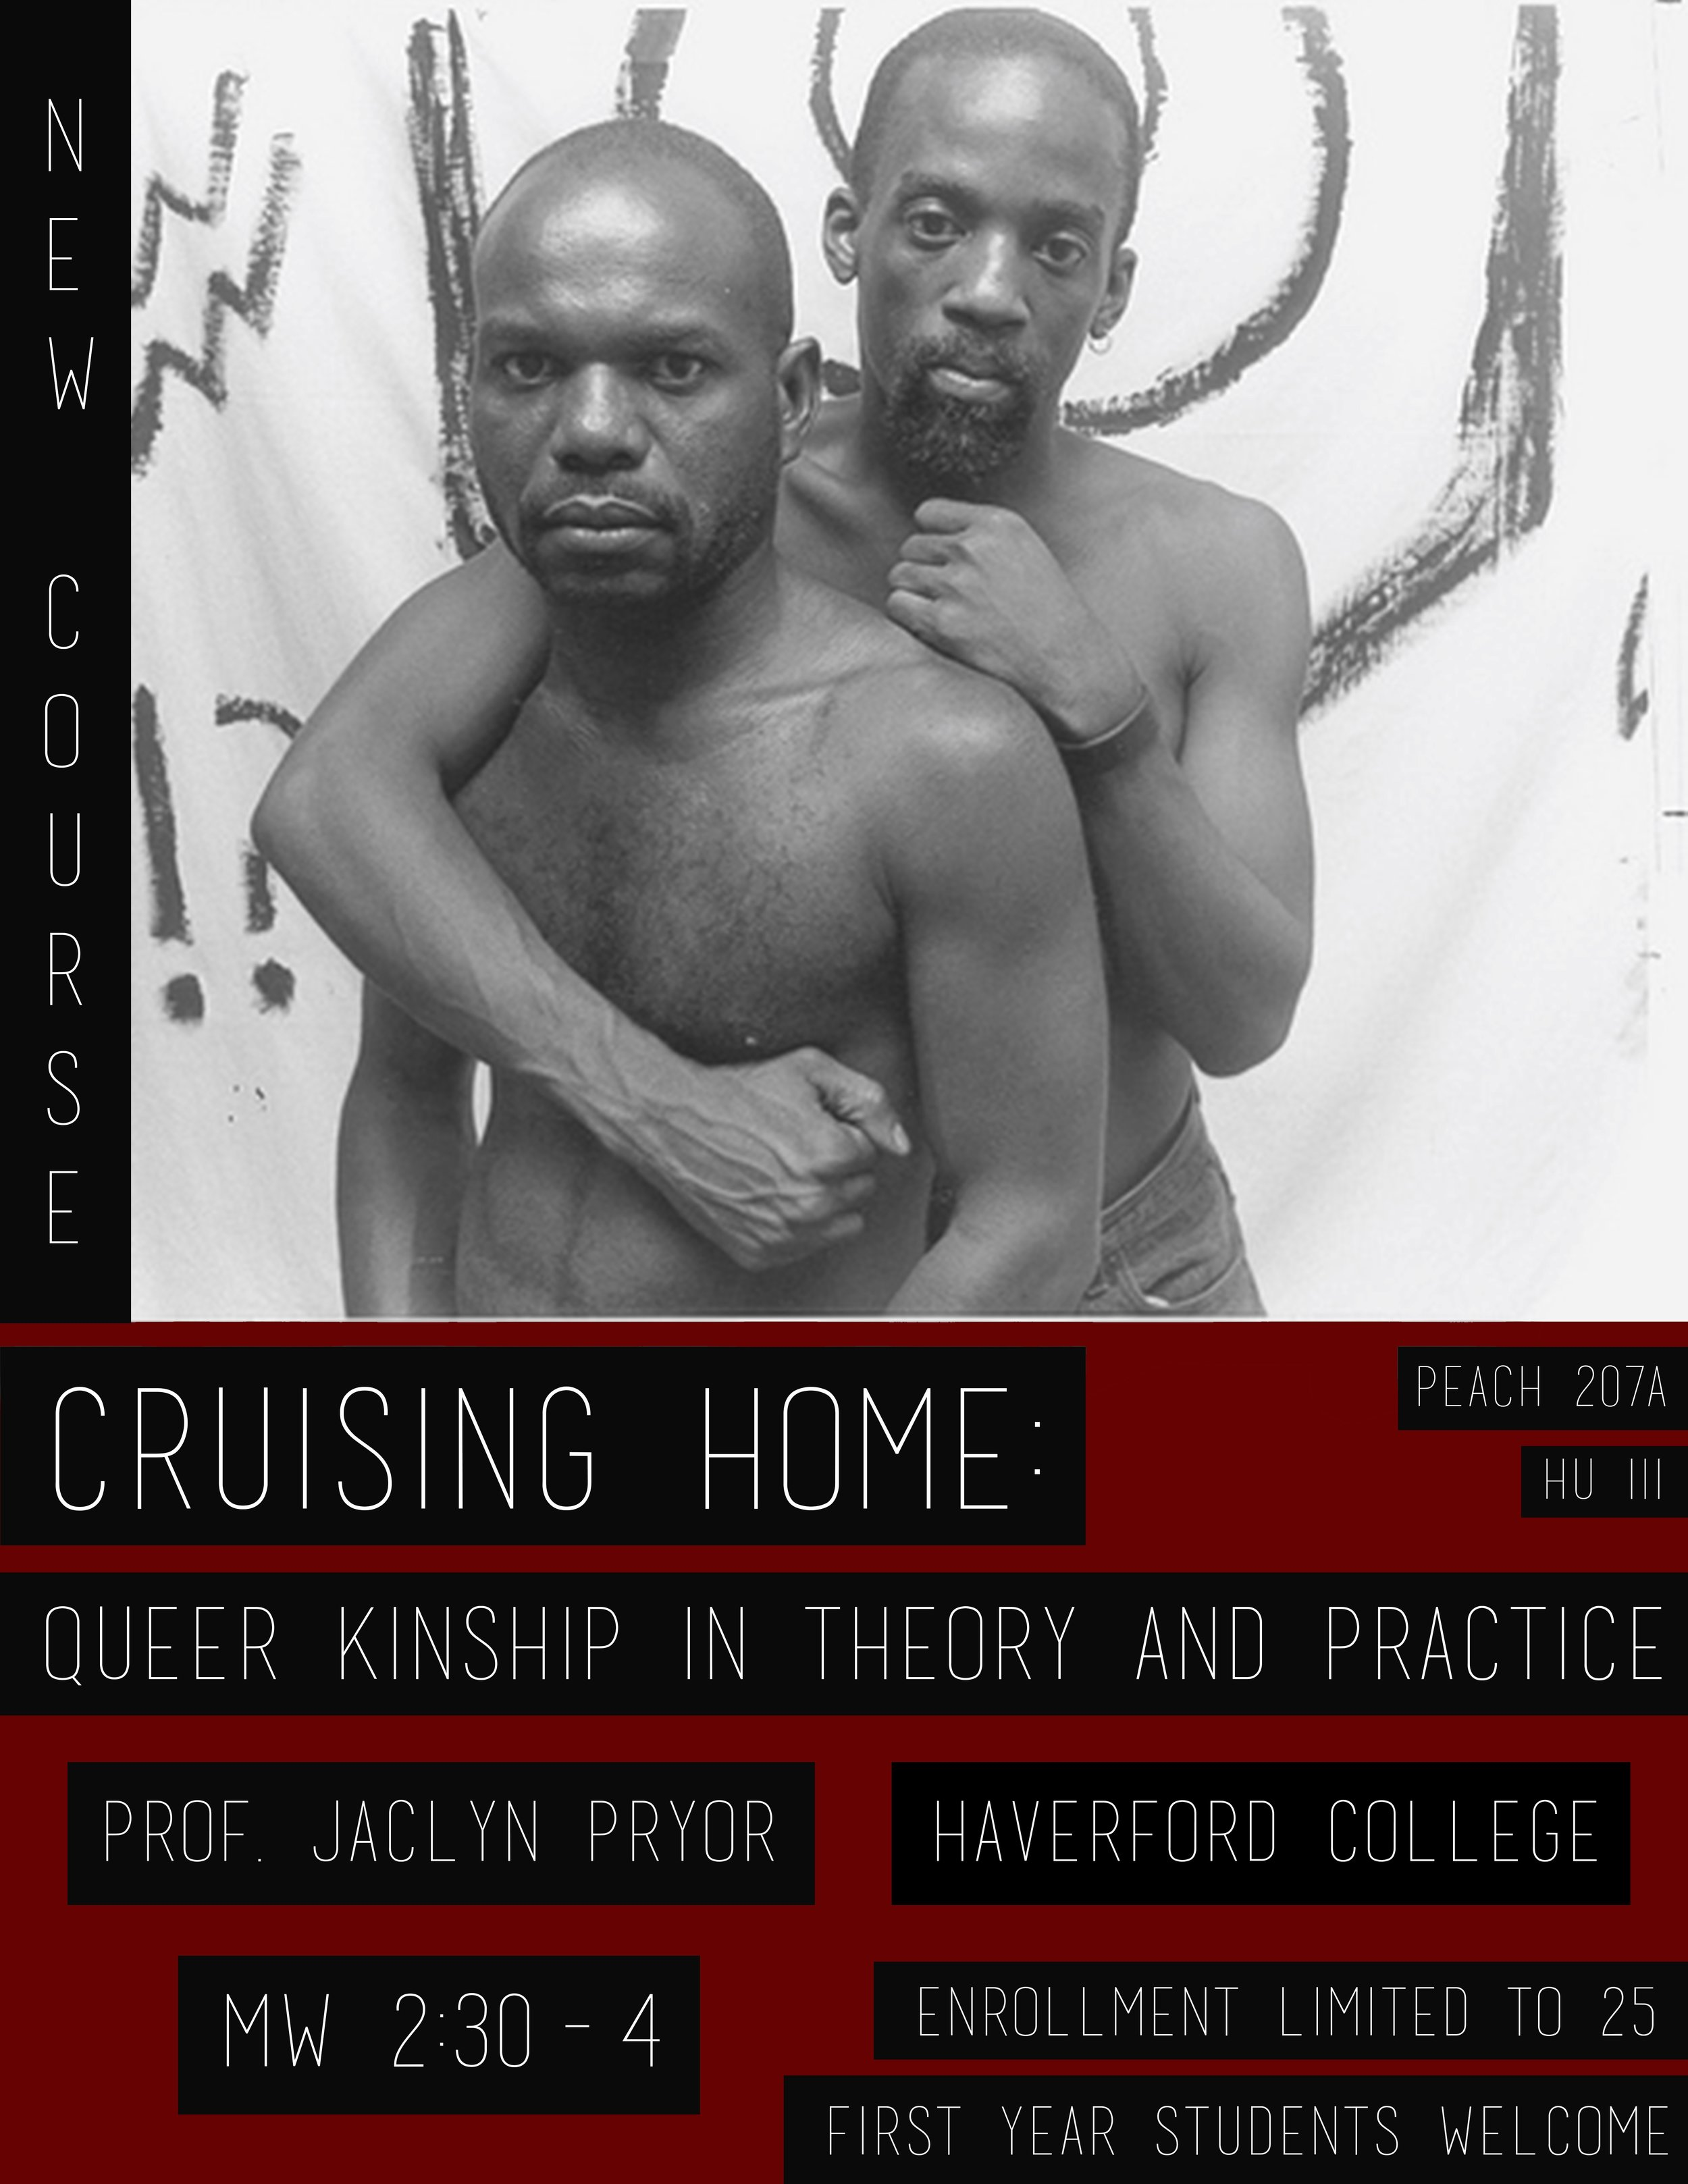 Course flyer, Cruising Home: Queer Kinship in Theory and Practice, Haverford College, Fall 2014.